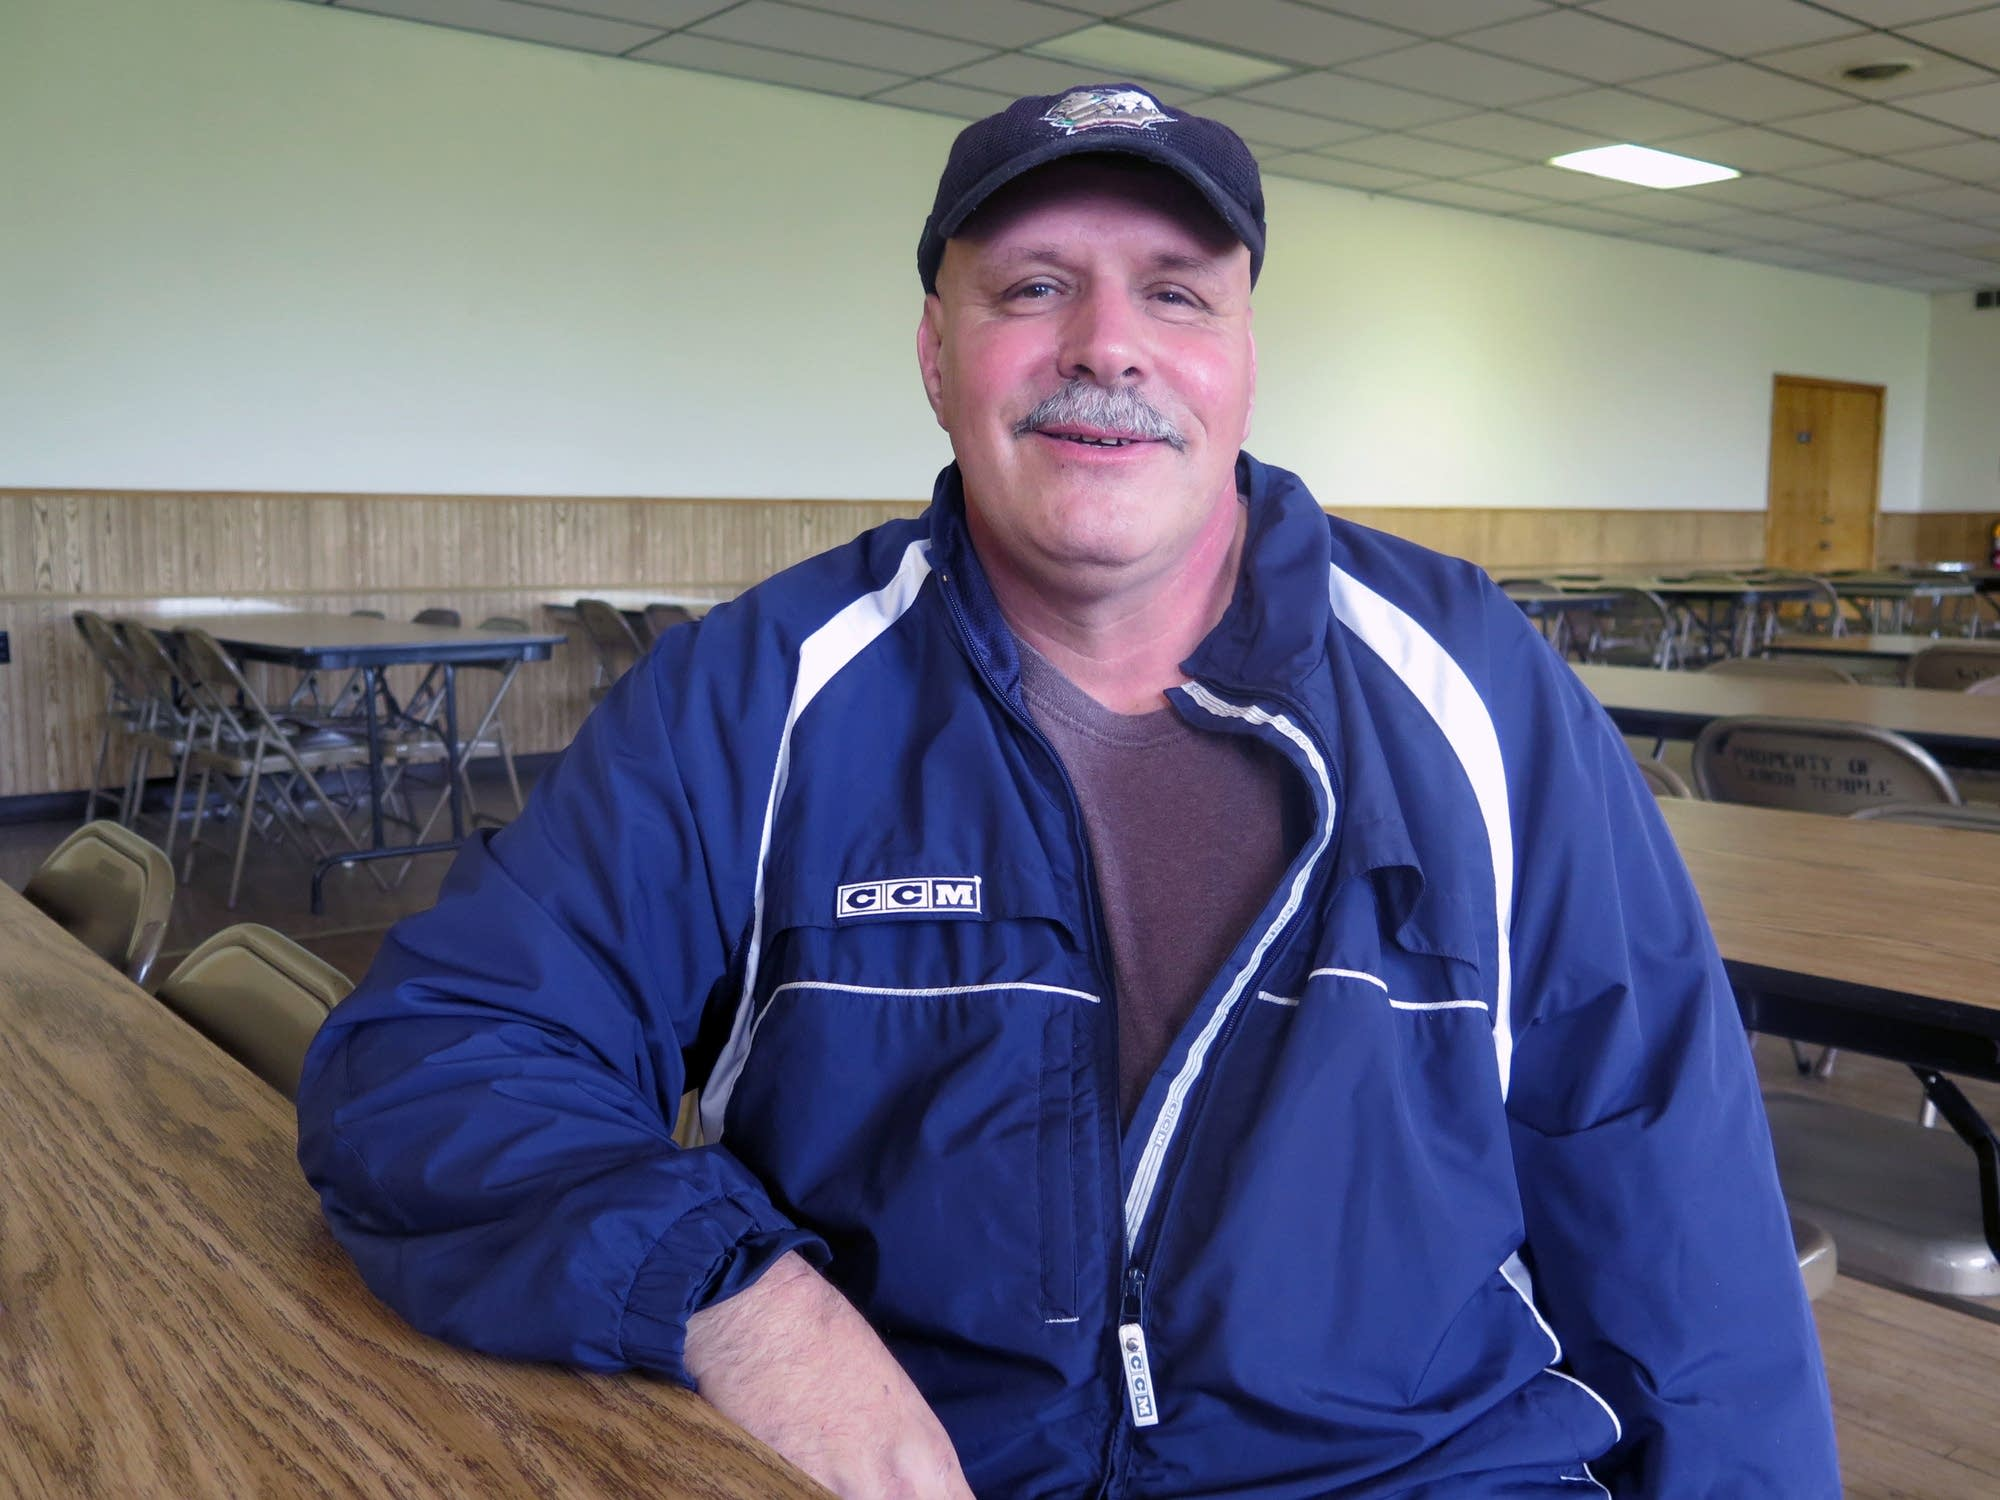 Steve Petoletti, president of the United Steel Workers Local 970 in Cloquet